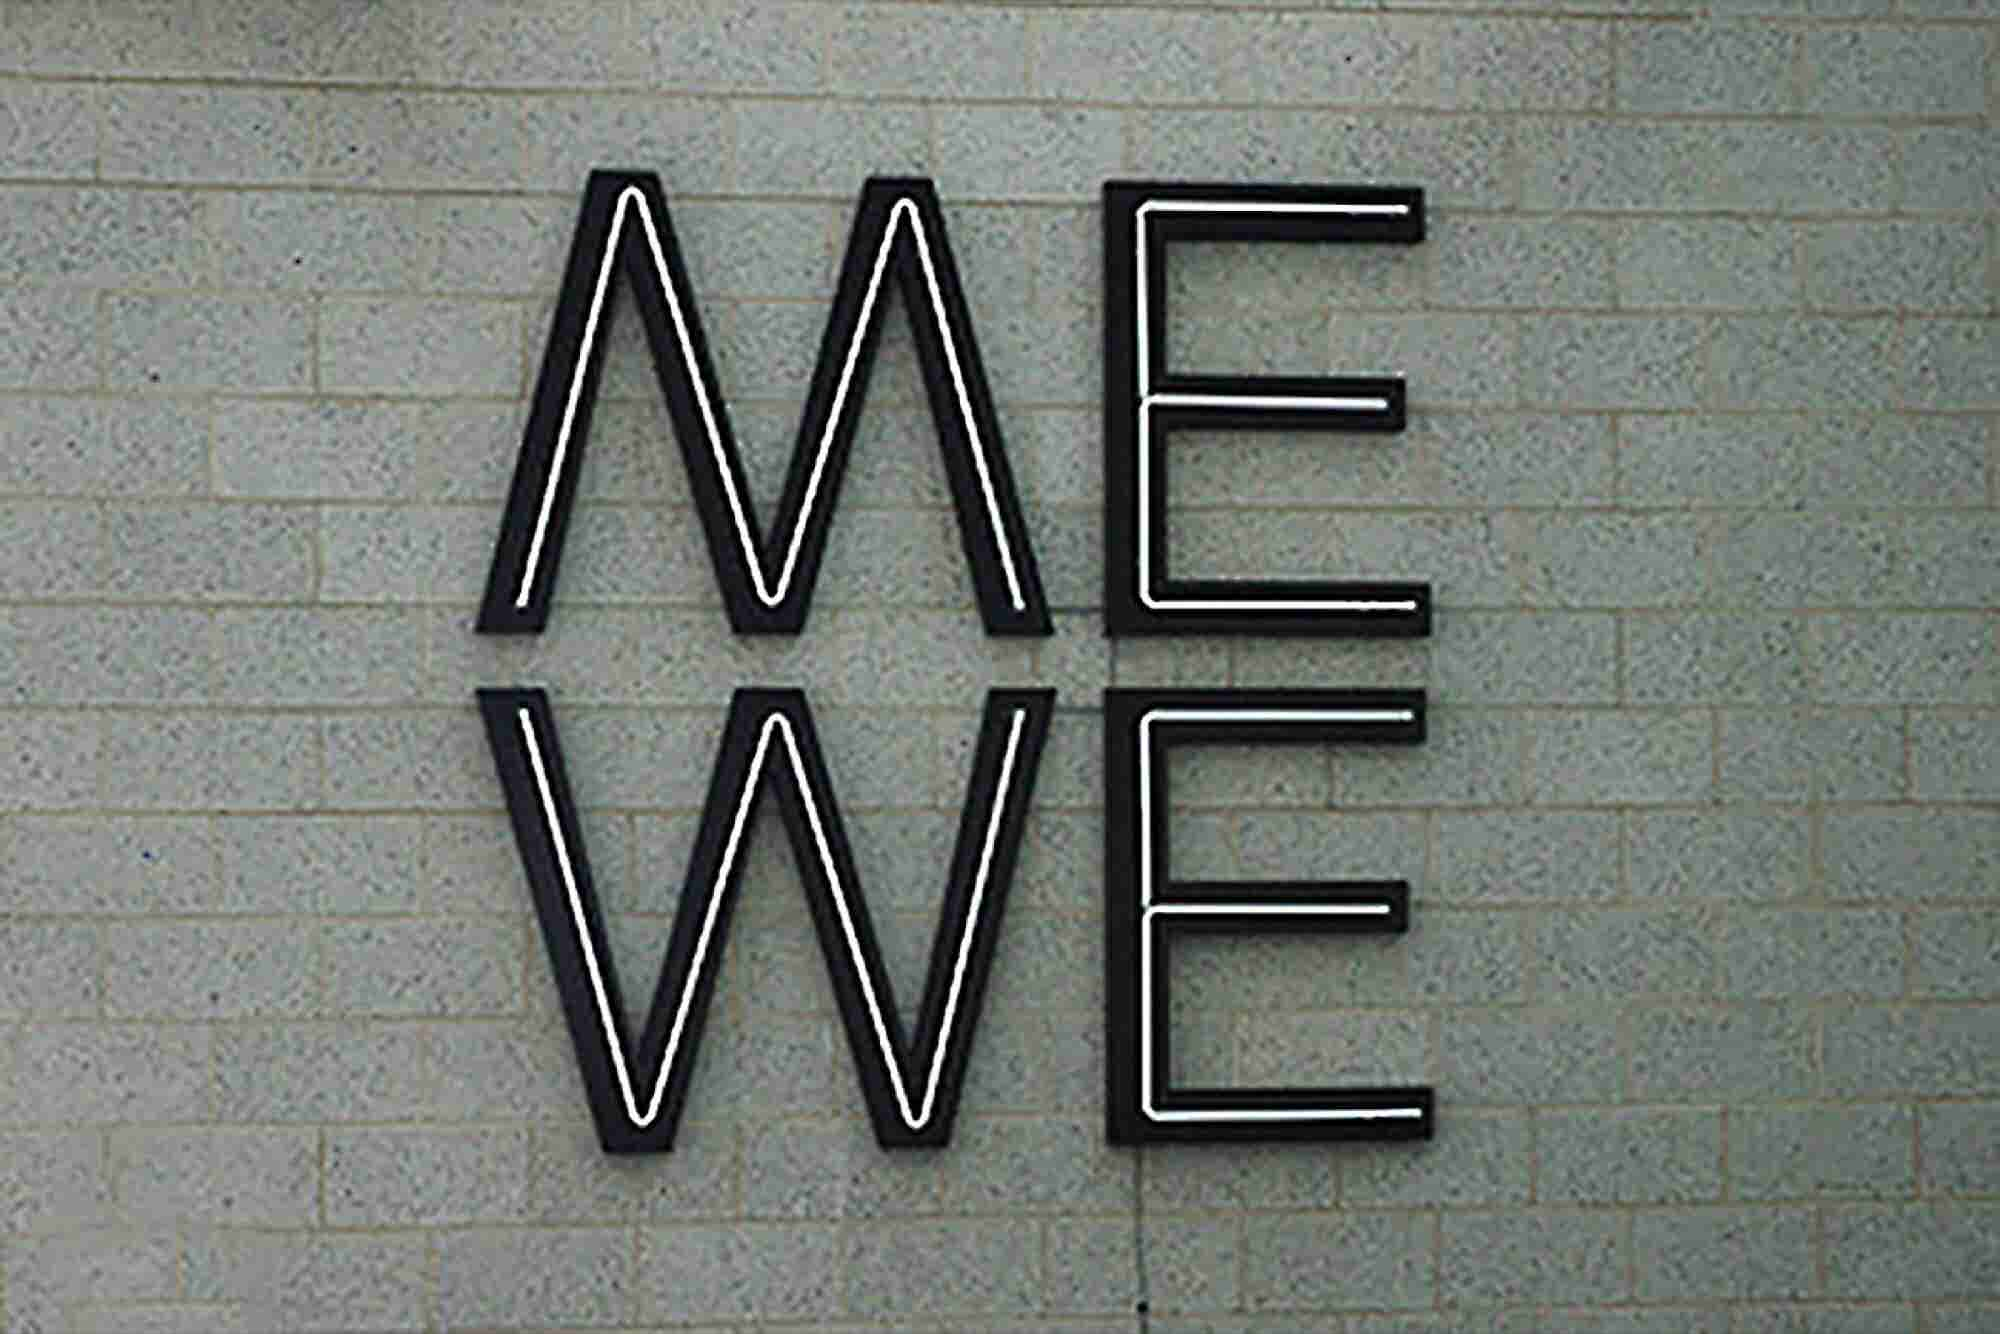 When You Raise Capital, Think 'We' Instead of 'Me'